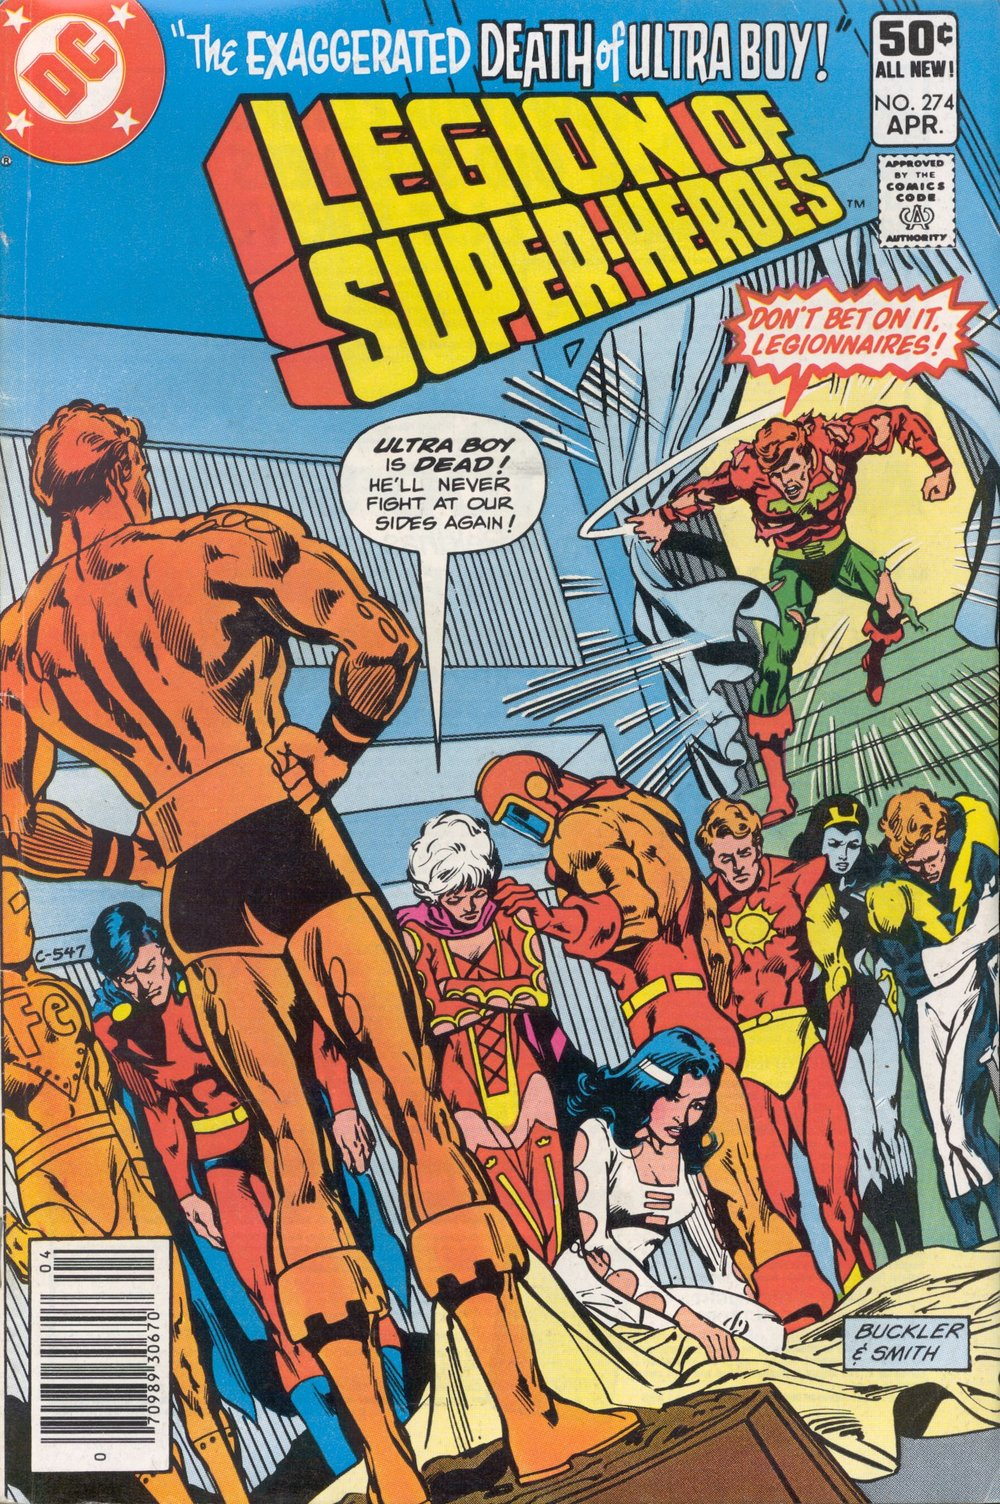 Legion of Super-Heroes (1980) #274, cover penciled by Rich Buckler & inked by Bob Smith.